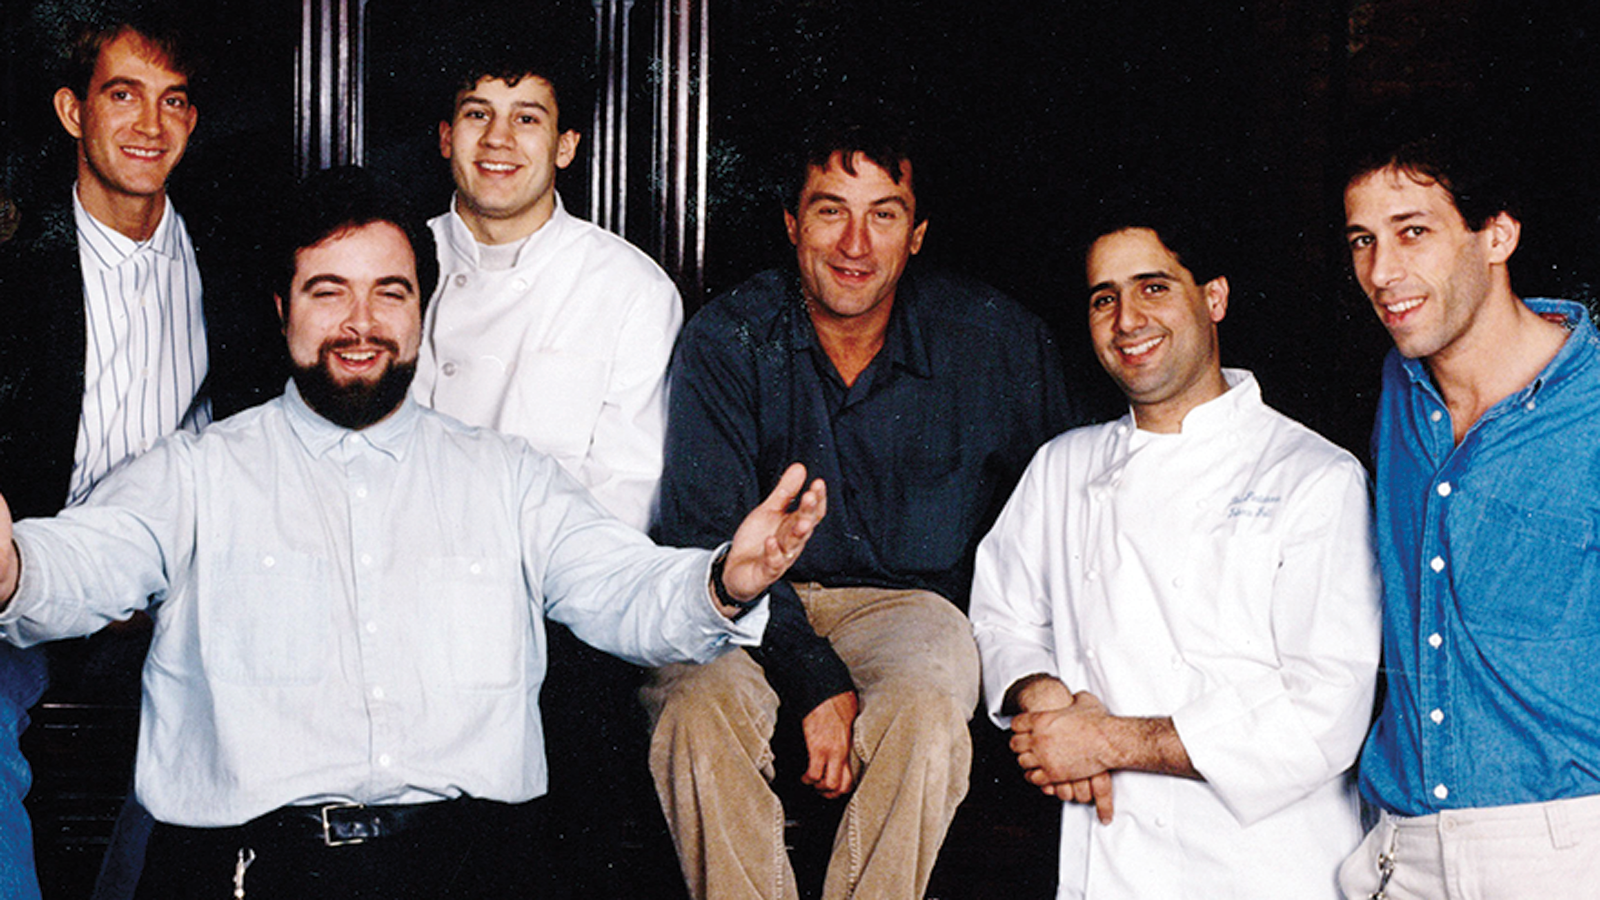 American fine-dining, with the help of restaurateurs such as Drew Nieporent, took off in the economic boom of the mid-1980s.